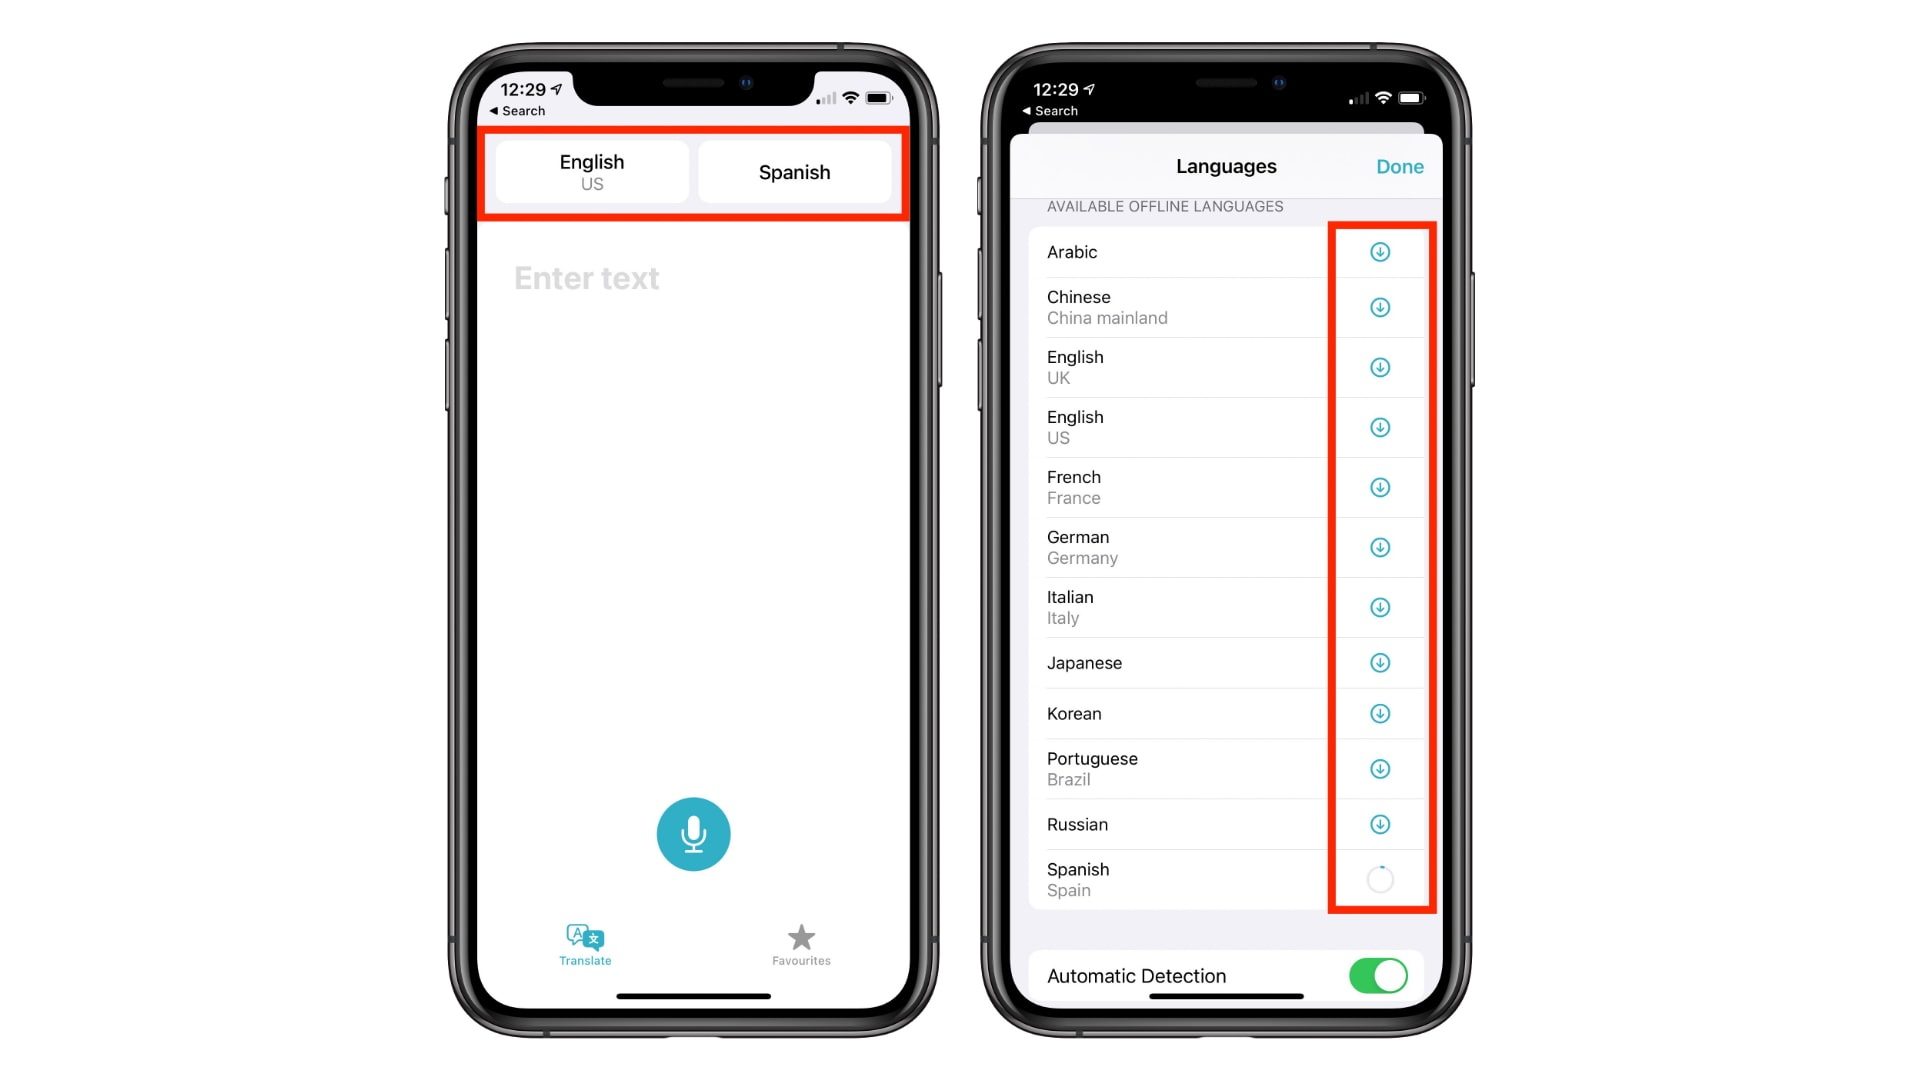 Download languages to use iOS 14's new Translate app offline